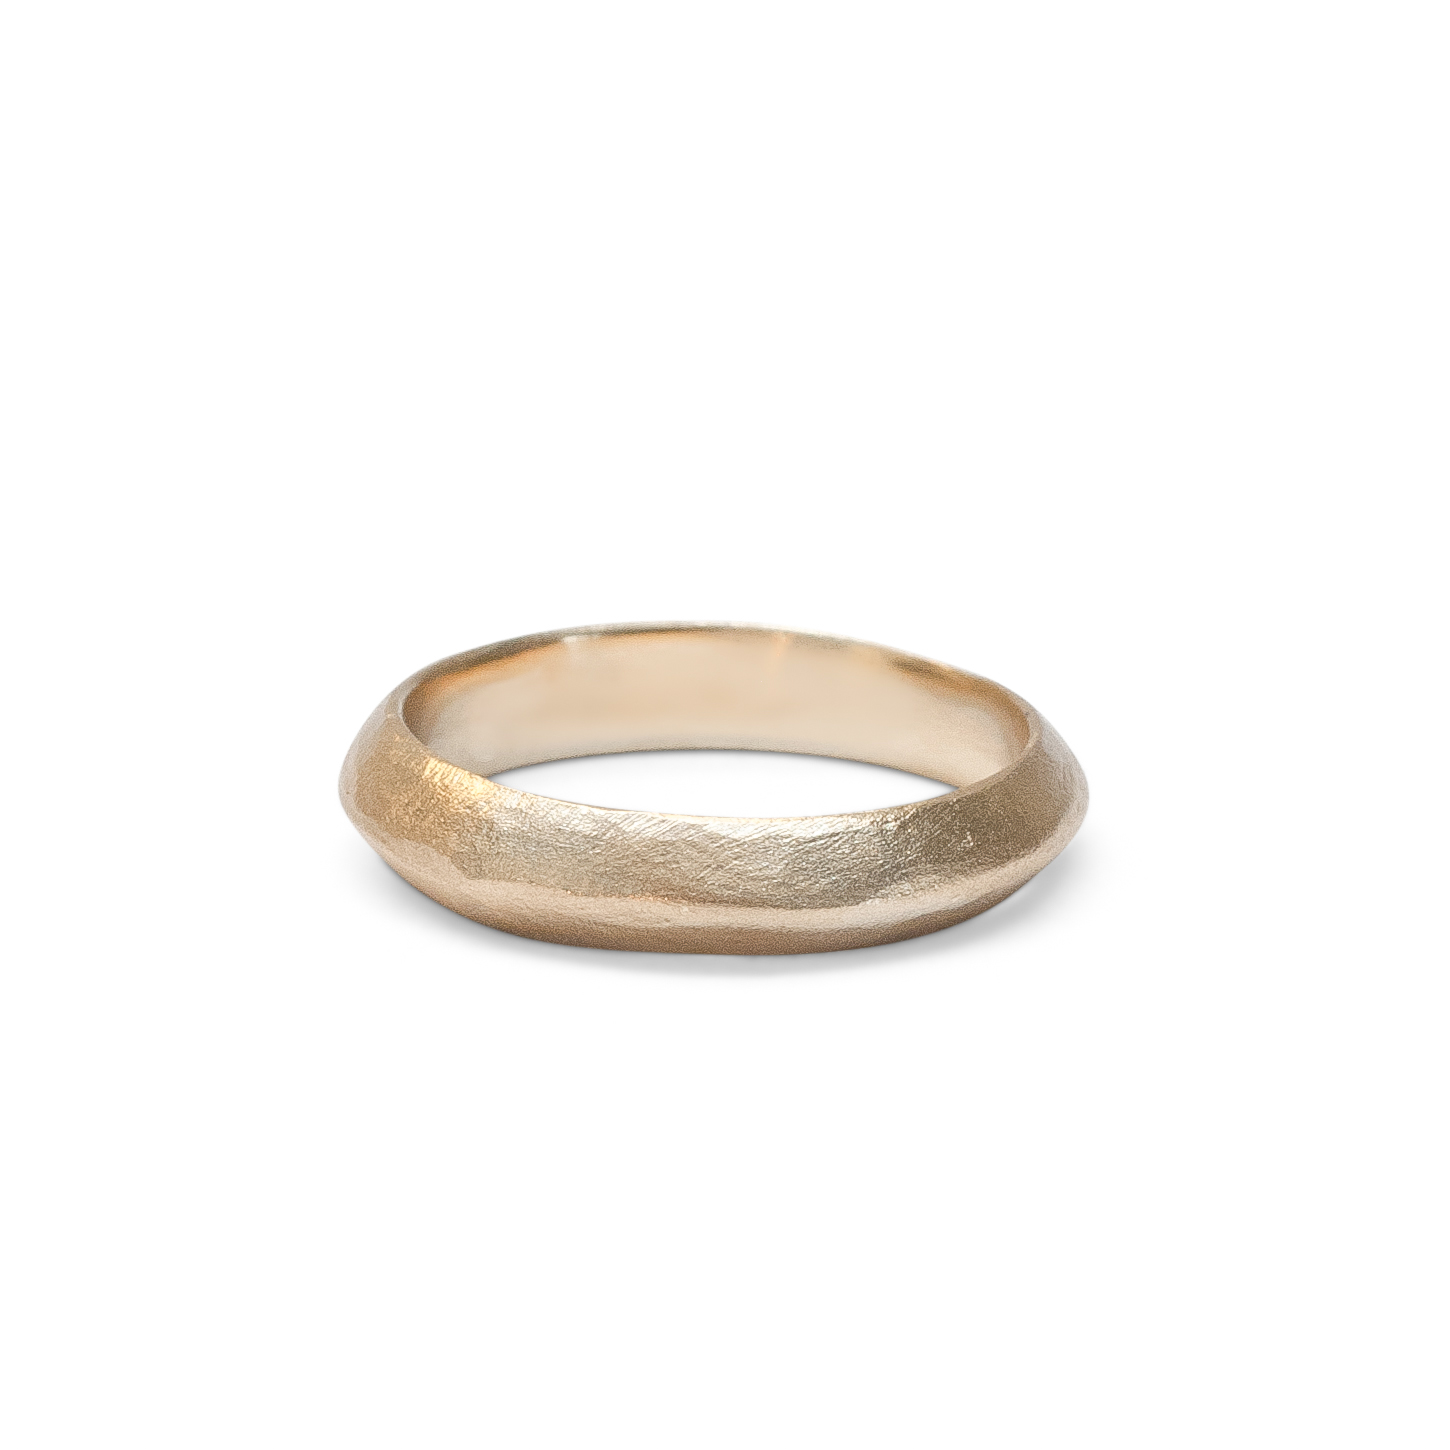 The Knife band by Kate Ellen | Ethical, Matching Wedding Bands | Keeper and Co.